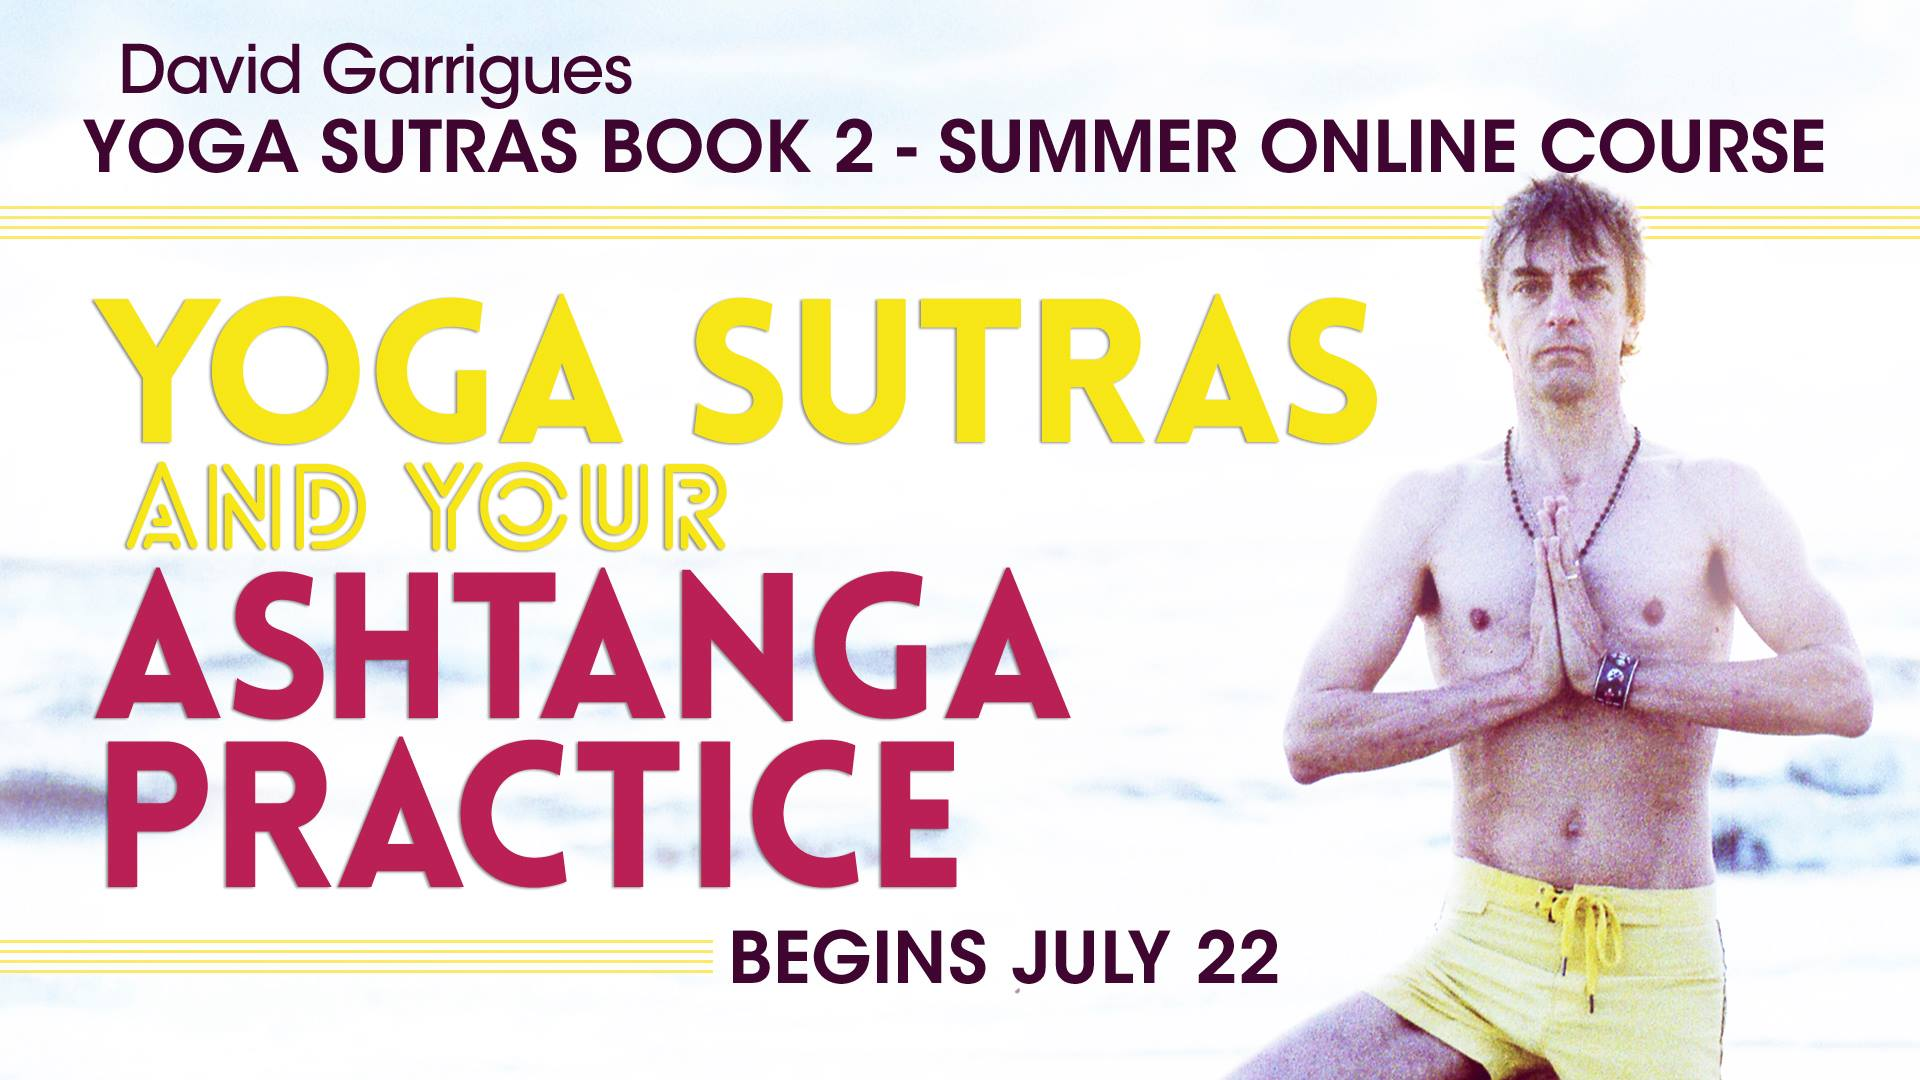 Yoga Sutras Book 2 Online Summer Course